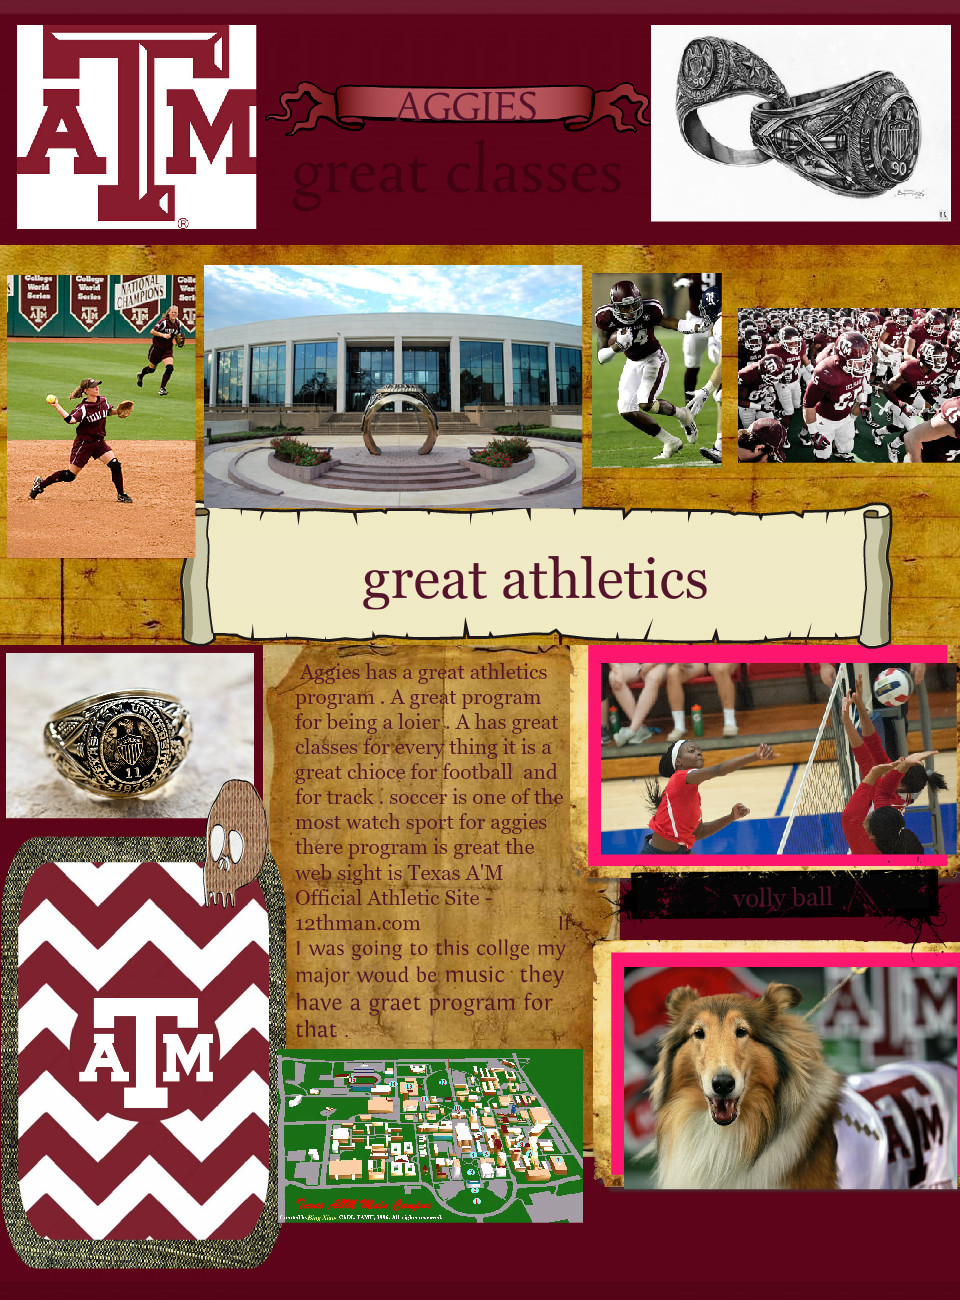 Aggies great athletics